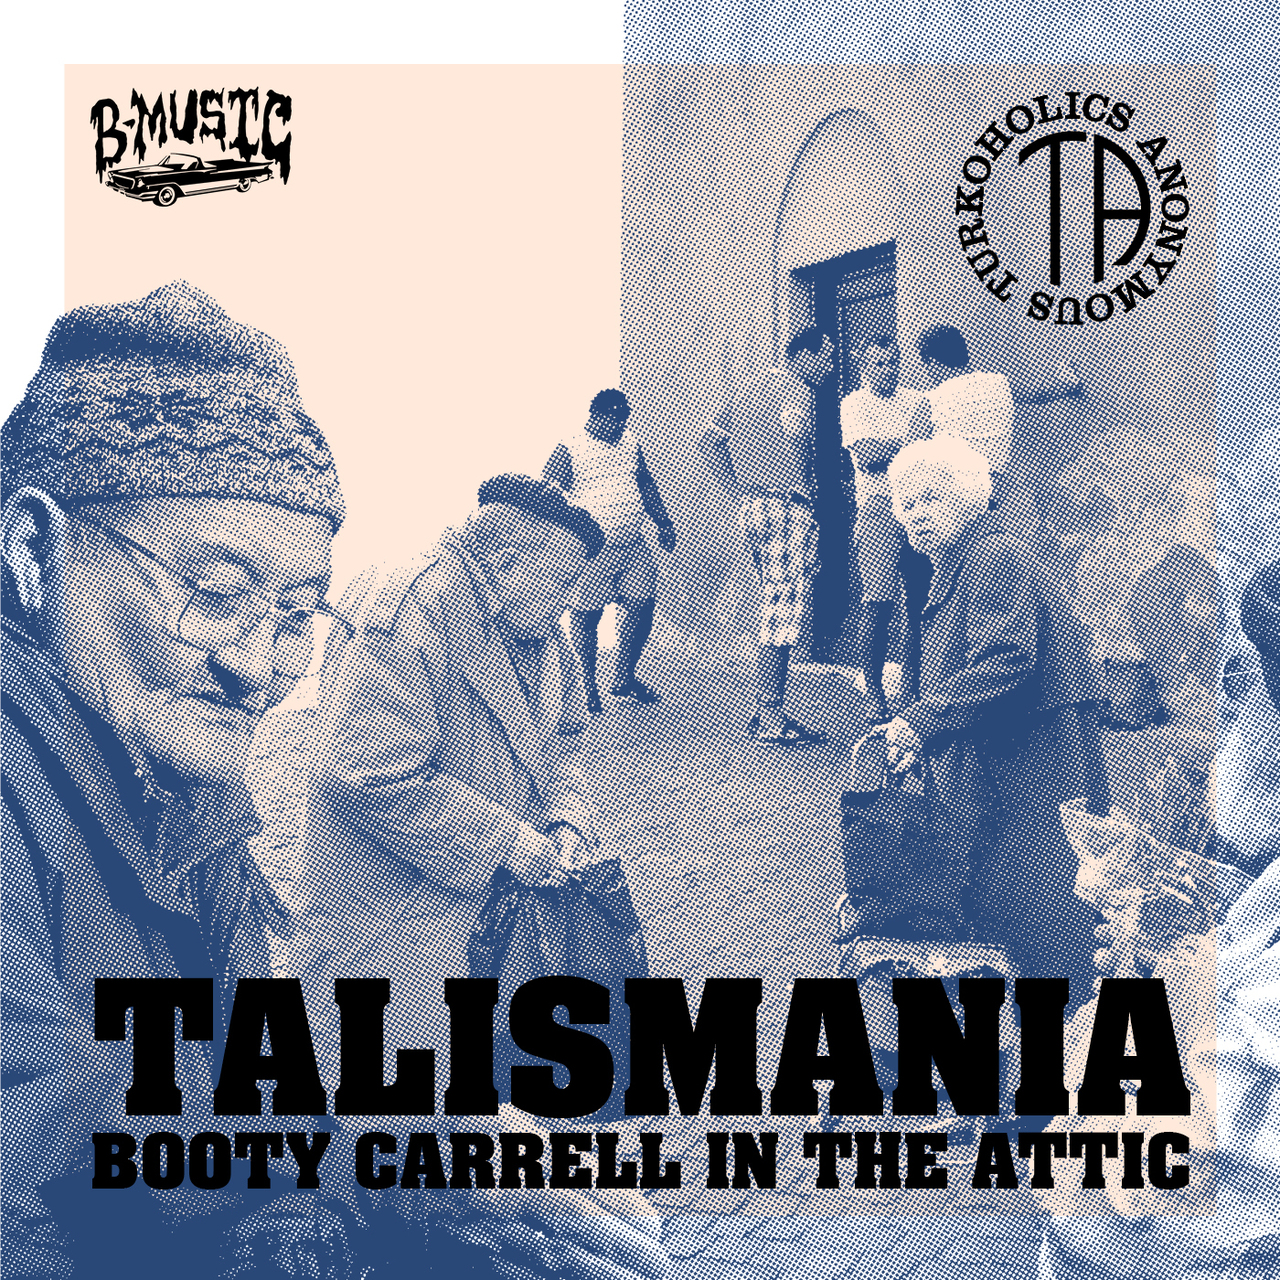 The Attic Podcast: 22. Booty Carrell - Talismania